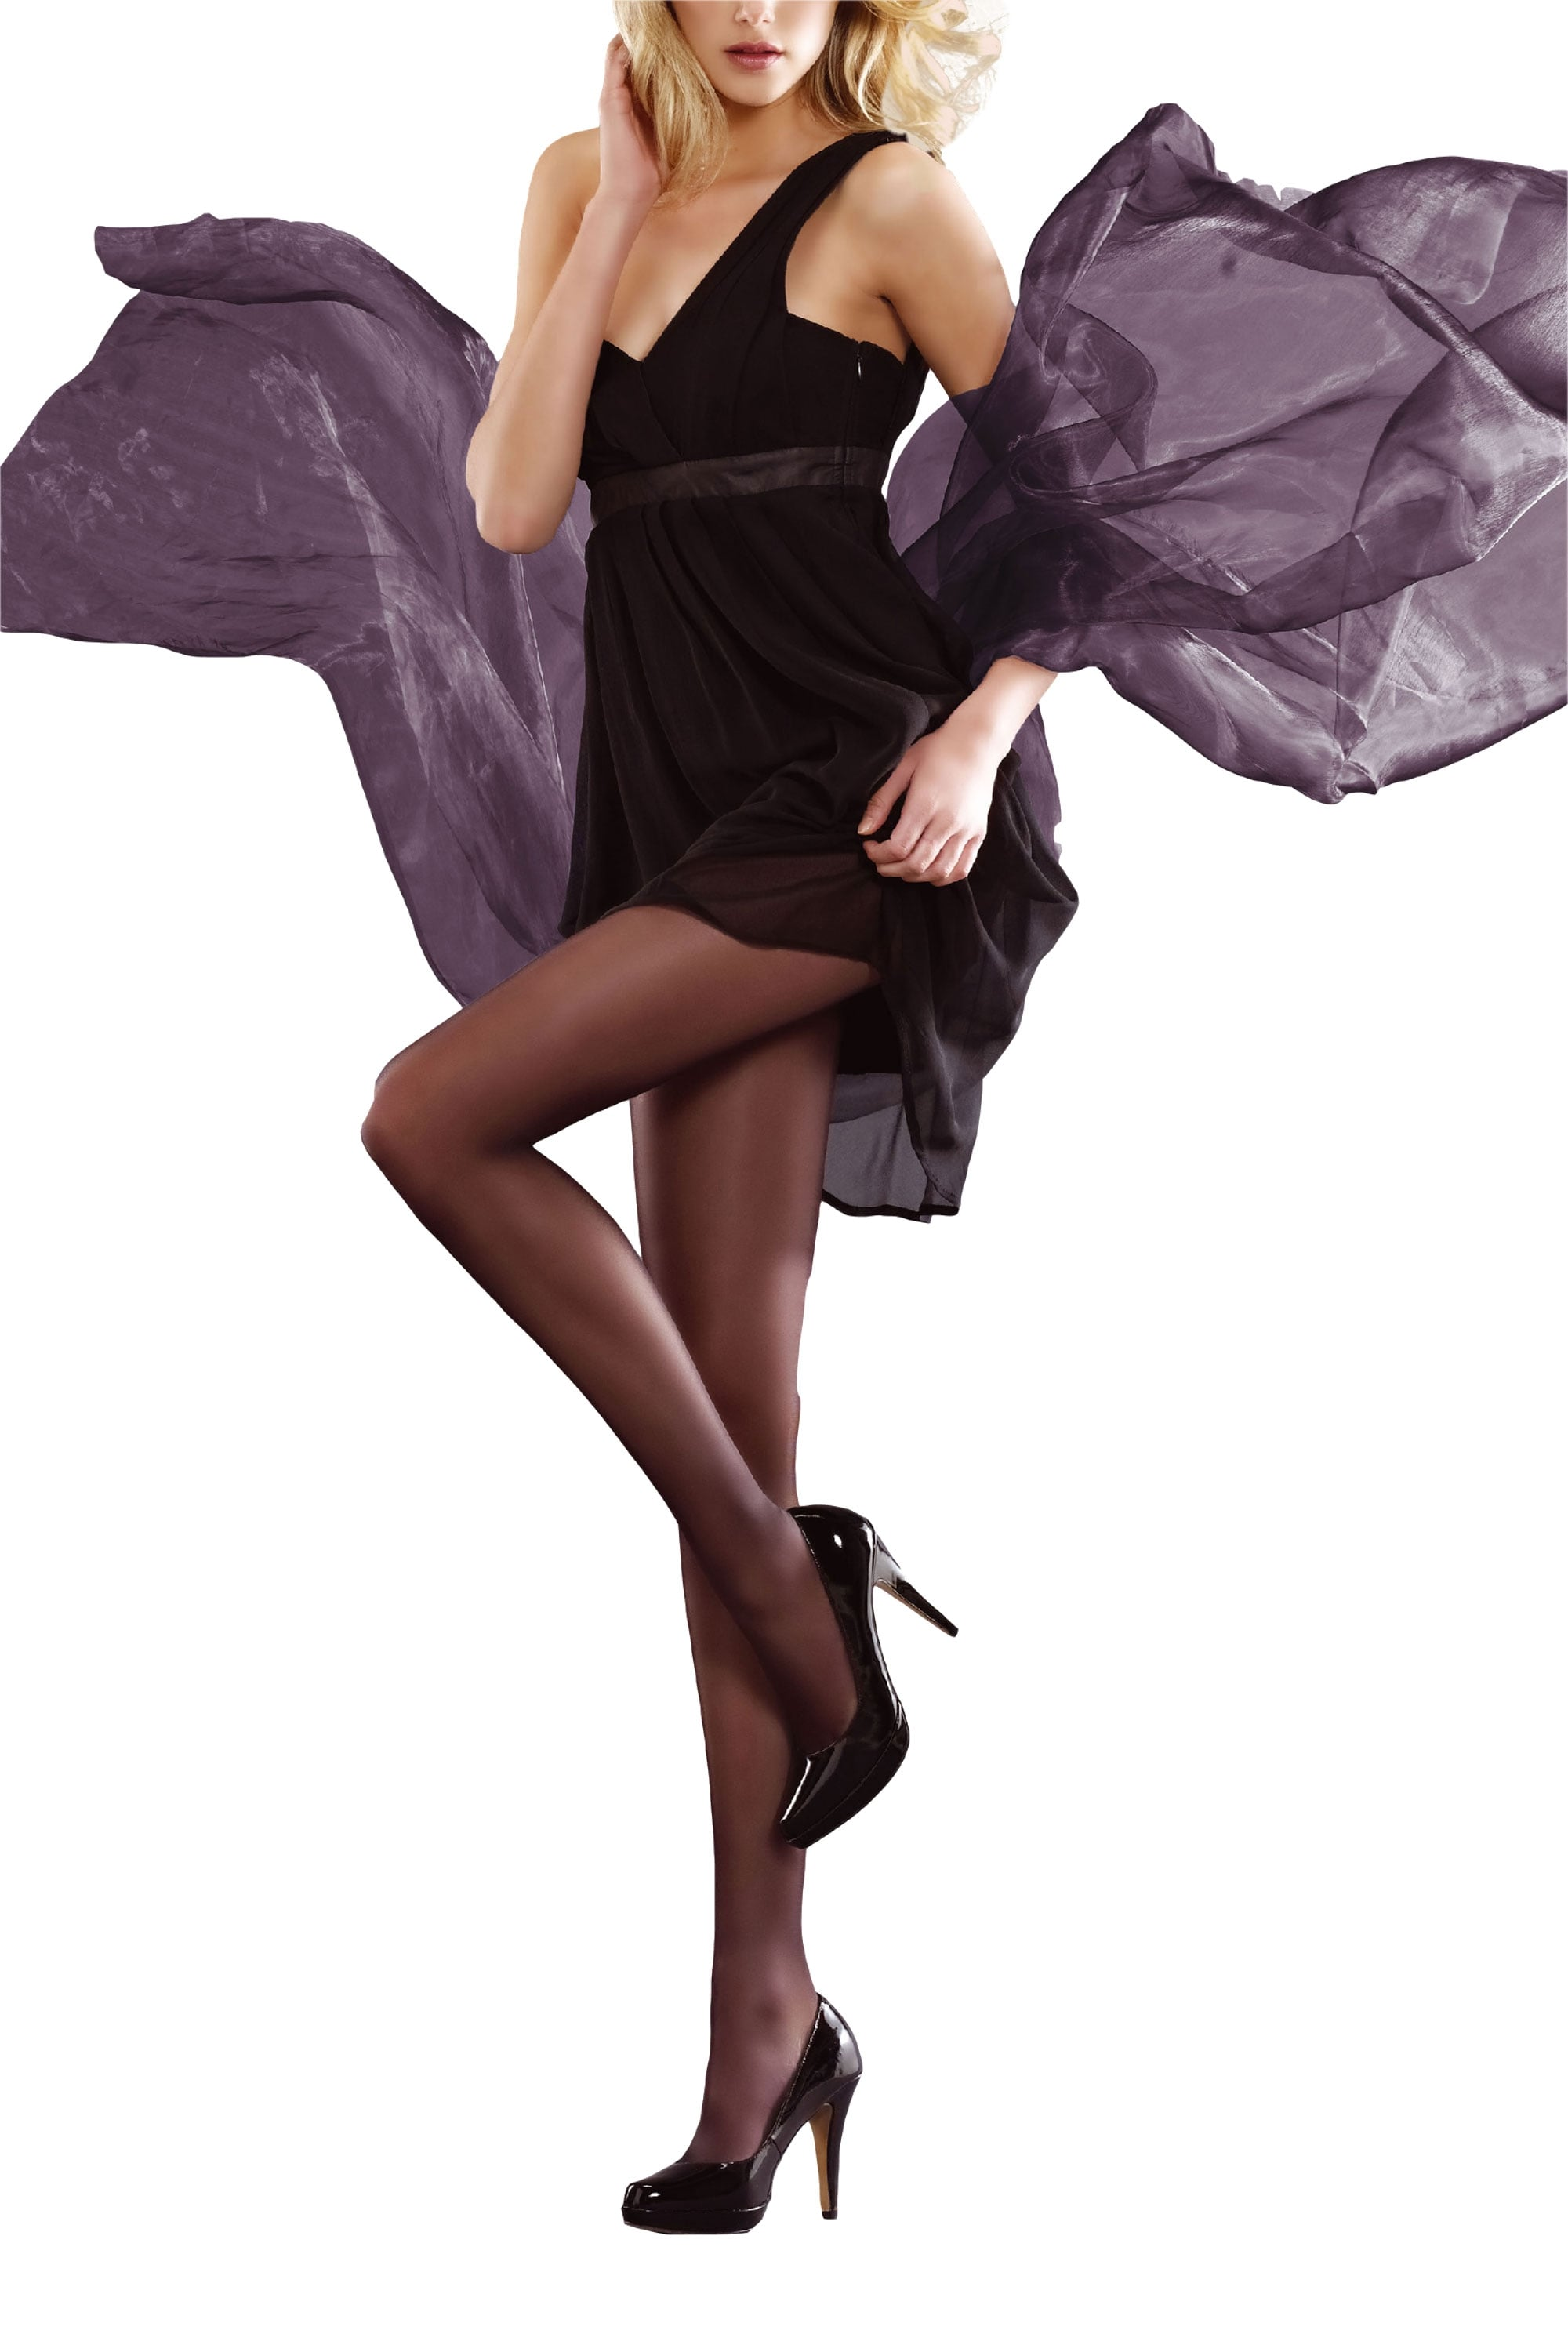 Small Ladies 1 Pair Charnos 15 Denier Sheer Lustre Hold Ups In 4 Colours Black